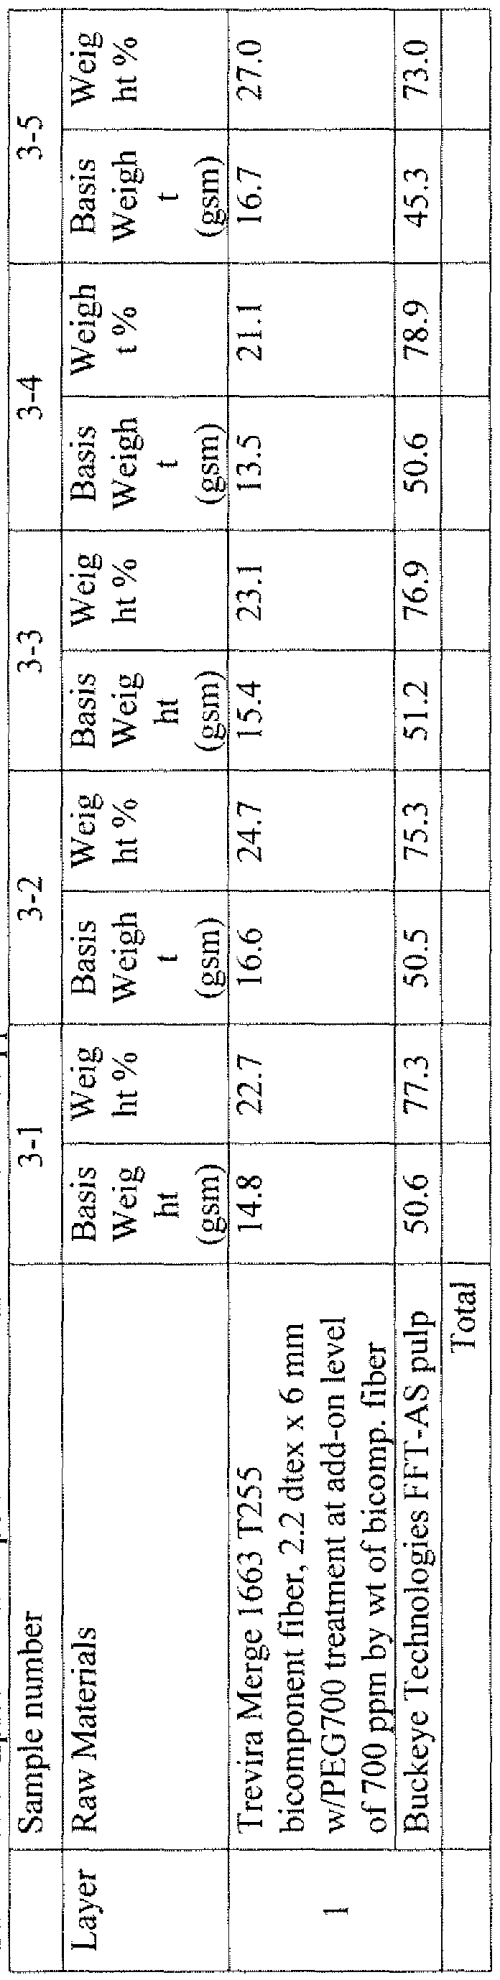 small resolution of figure imgf000080 0001